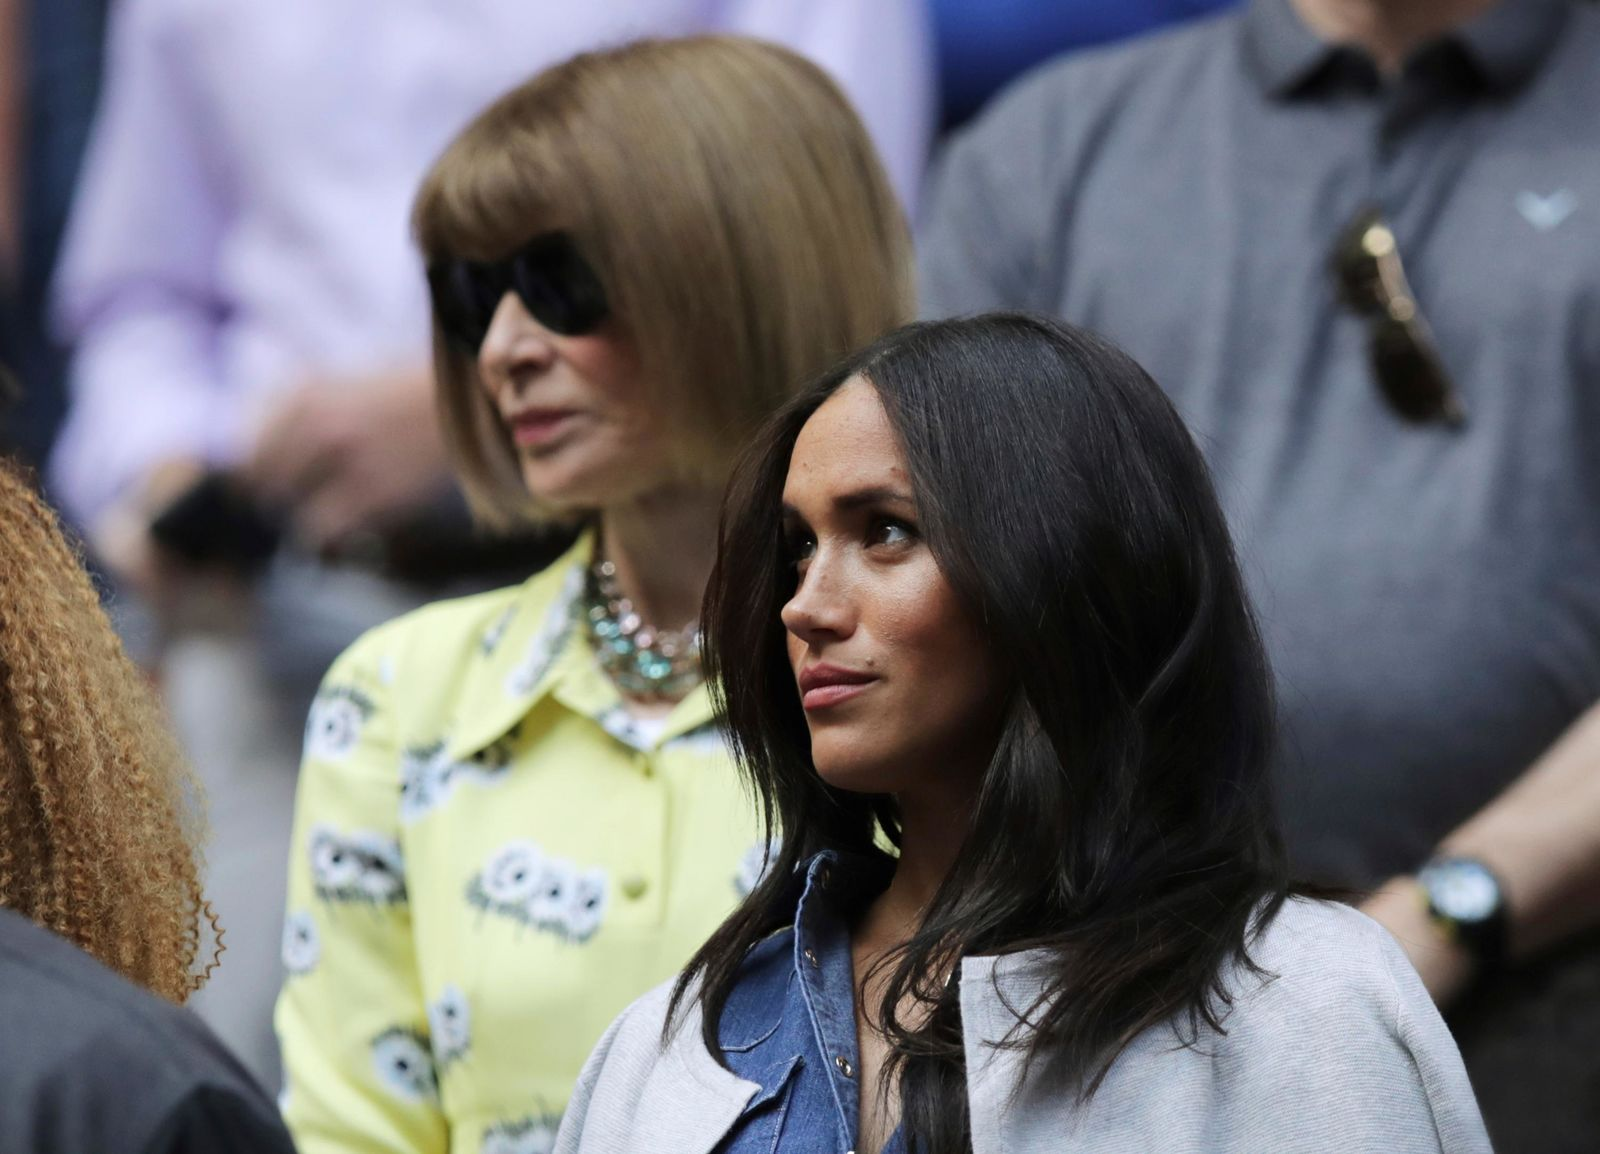 Meghan, Duchess of Sussex, right, and Anna Wintour wait for the start of the women's singles final of the U.S. Open tennis championships between Serena Williams, of the United States, and Bianca Andreescu, of Canada, Saturday, Sept. 7, 2019, in New York. (AP Photo/Charles Krupa)